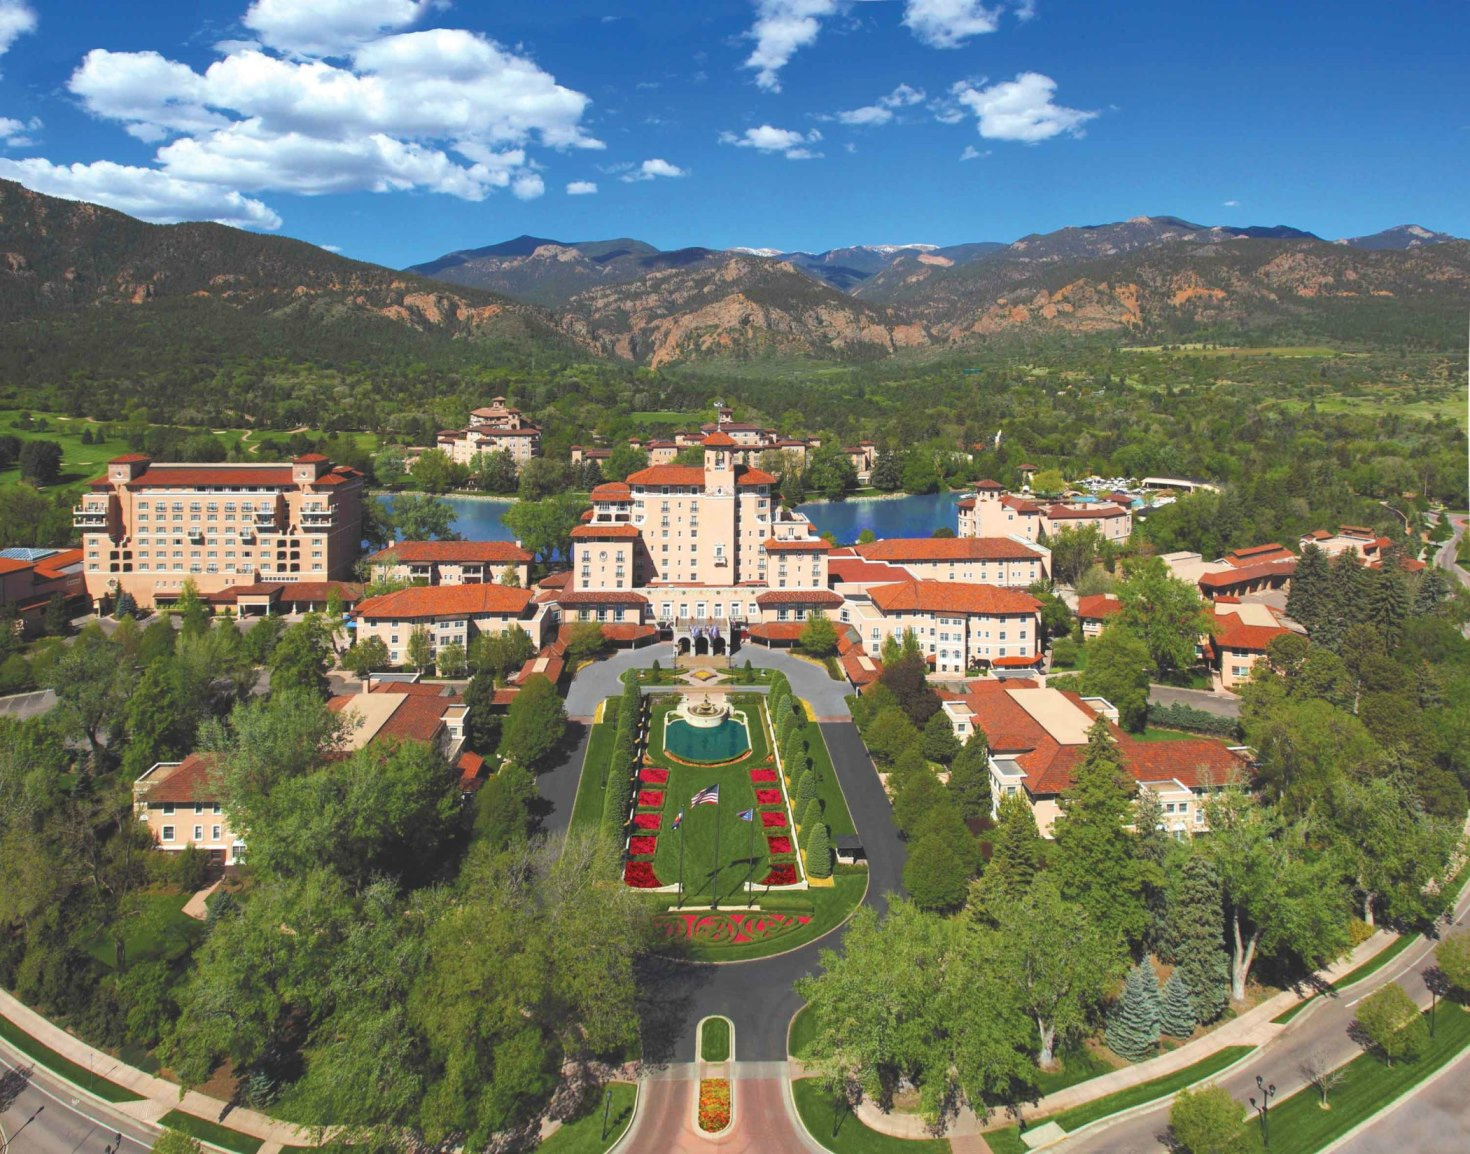 The Broadmoor Aerial Photo